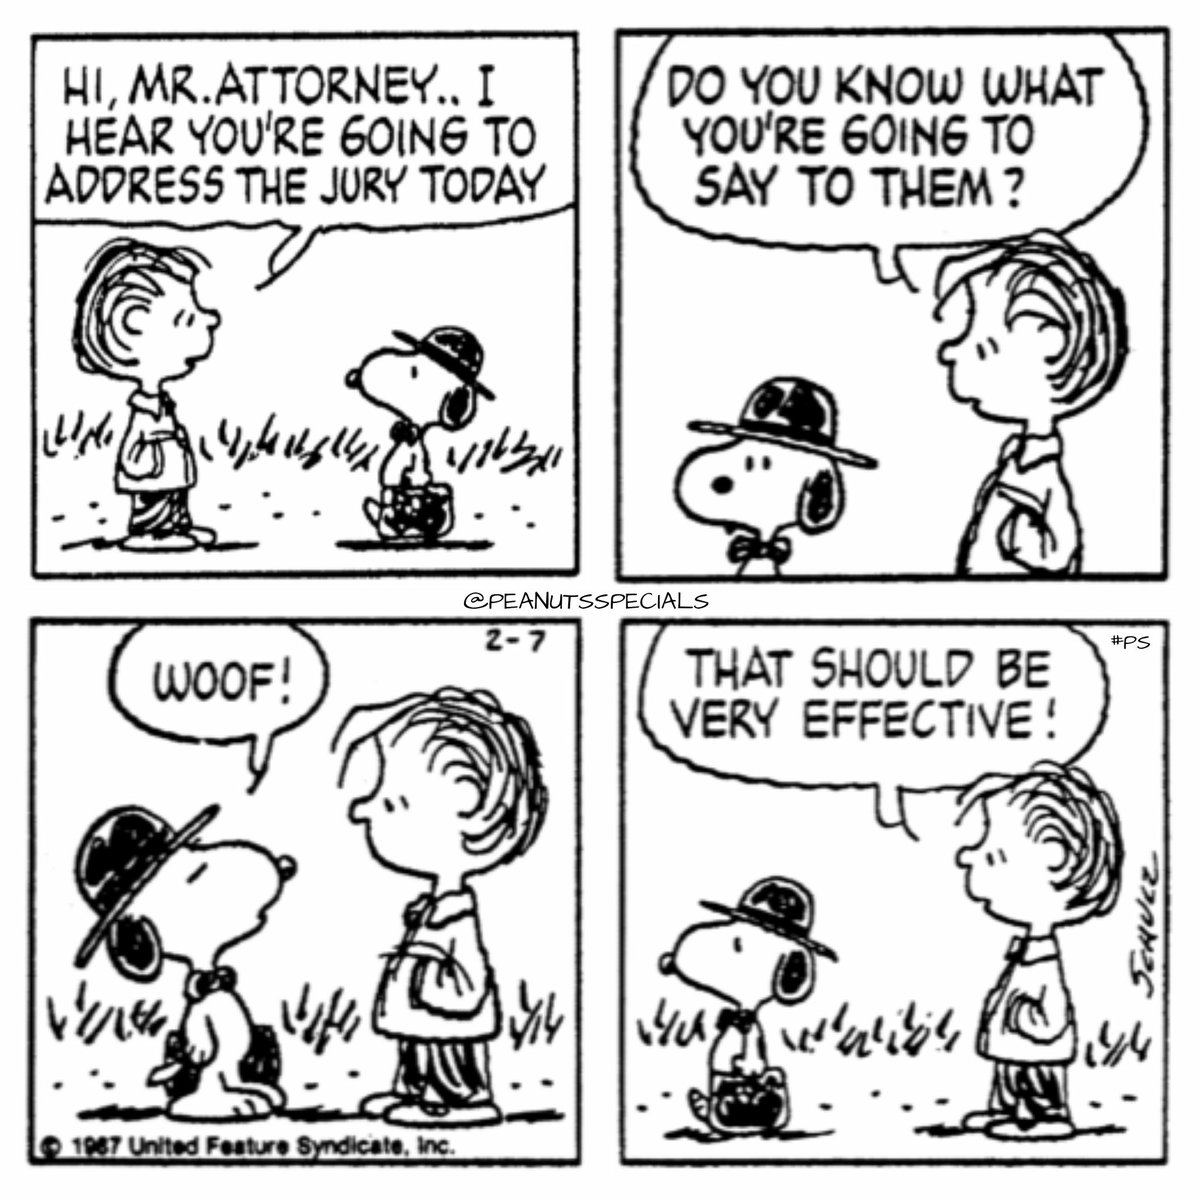 """Official Peanuts Specials on Twitter: """"First Appearance: February 7th, 1987  #peanutsspecials #ps #pnts #schulz #snoopy #linus #mr #attorney #address  #jury #woof #effective https://t.co/SBsVqfs3Jr https://t.co/hvsusnvZXe…  https://t.co/468tjk8Wrk"""""""